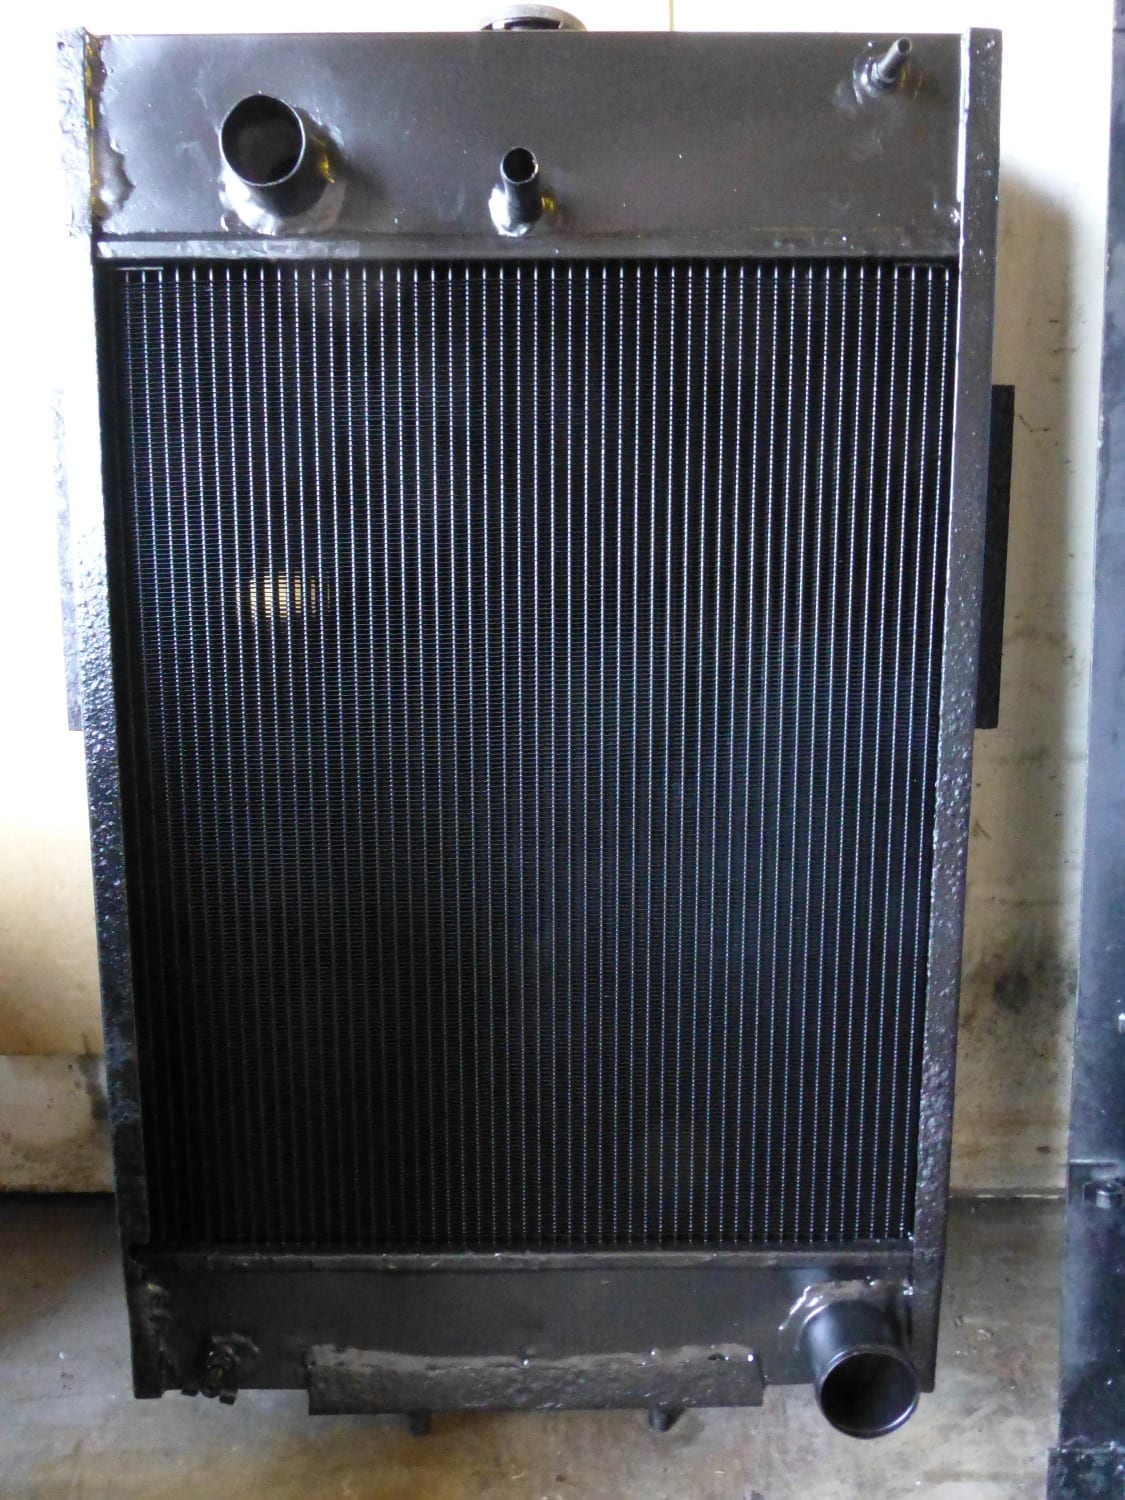 UHP Pump Radiator from a Cummings Engine